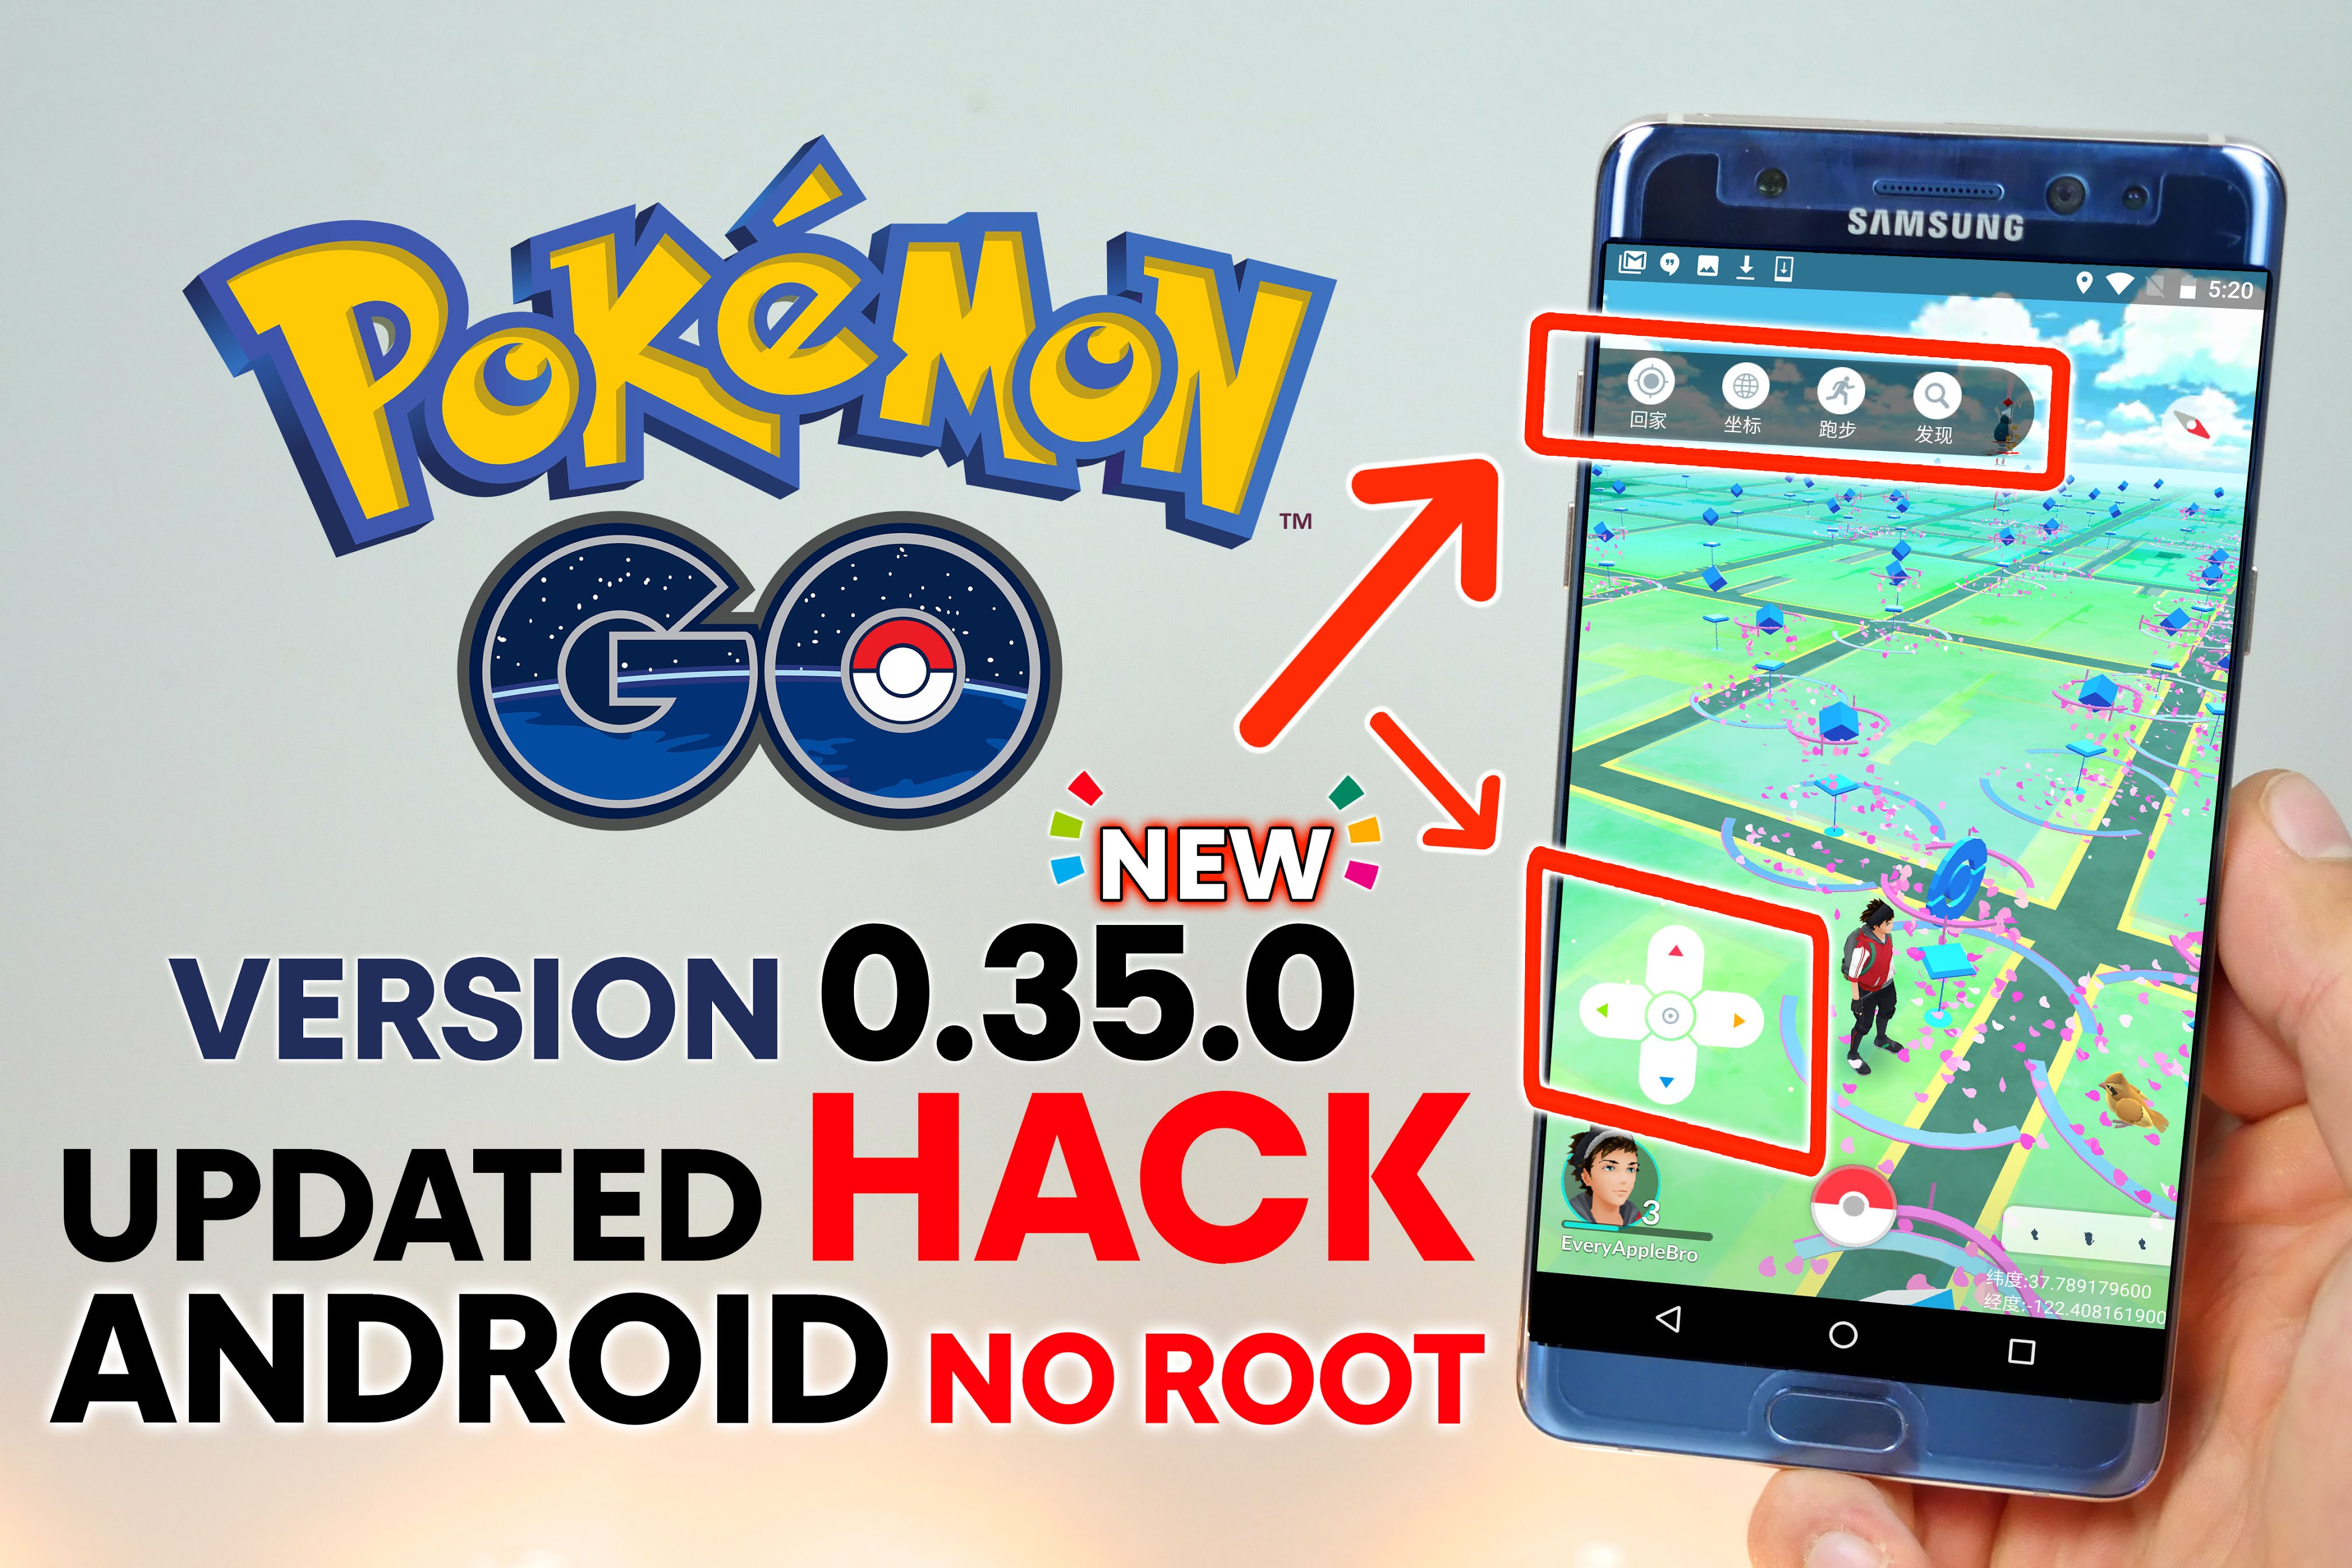 Pokemon GO Hack Android NO Root 0 35 0 - Teleport & Catch ANY